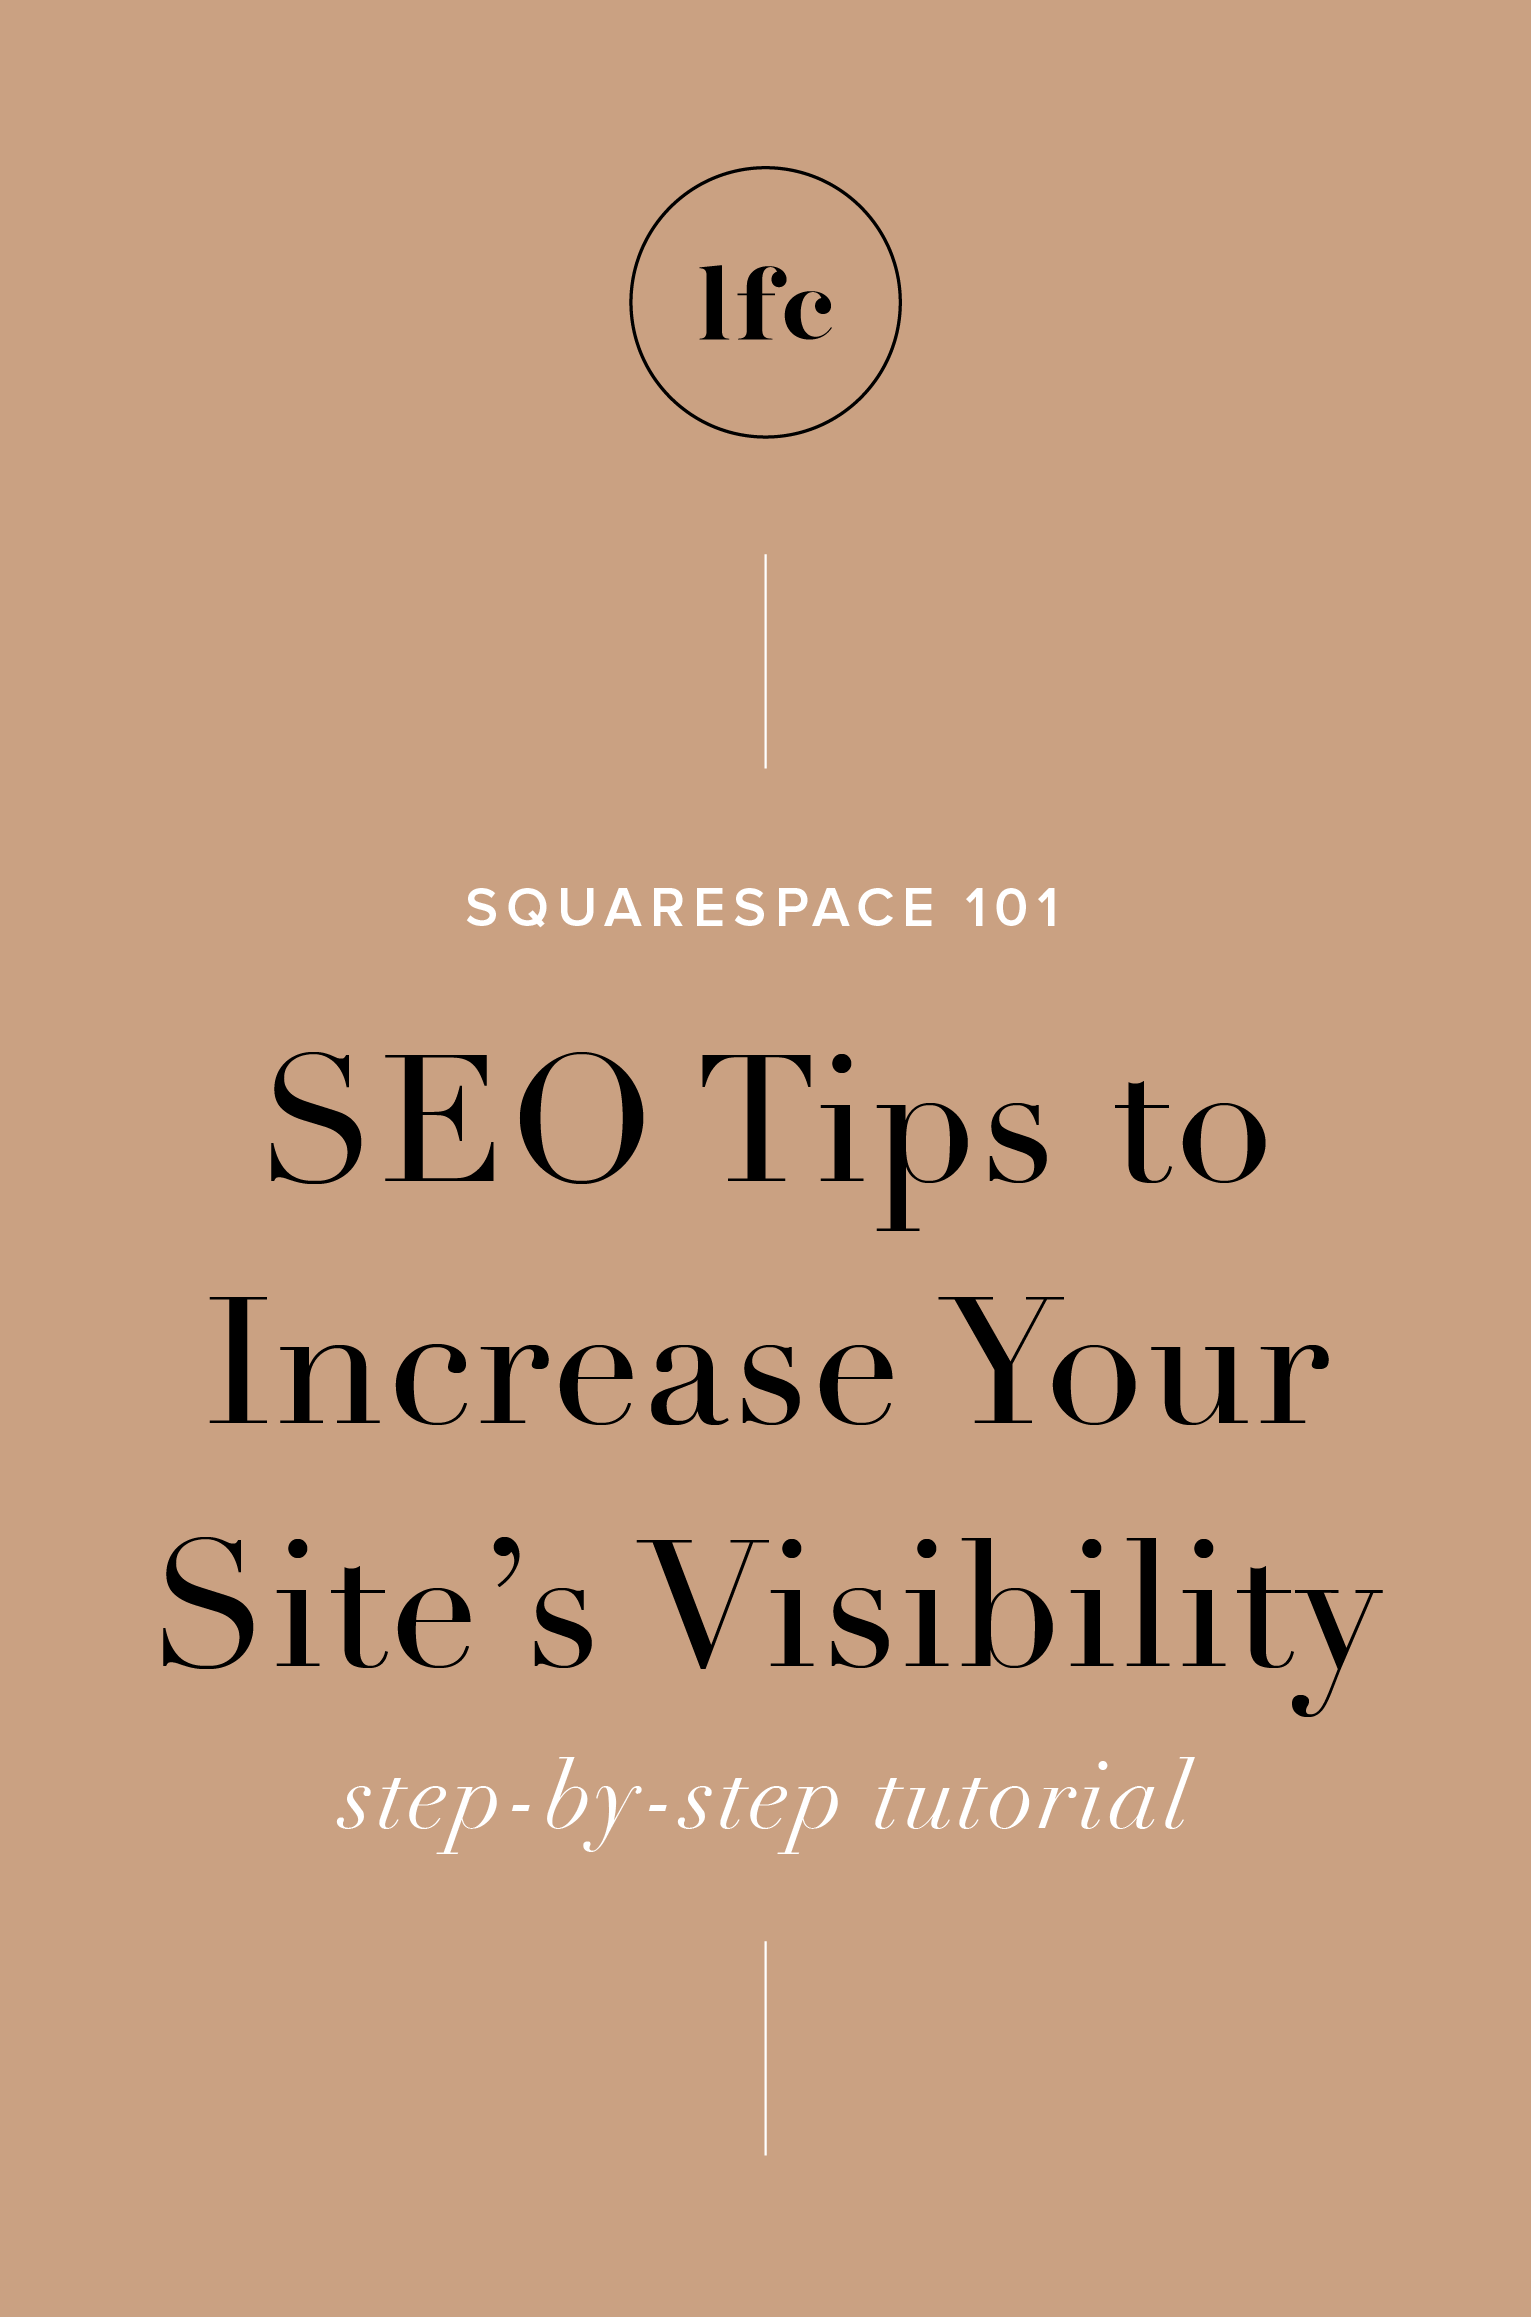 SEO Tips to Increase Your Site's Visibility